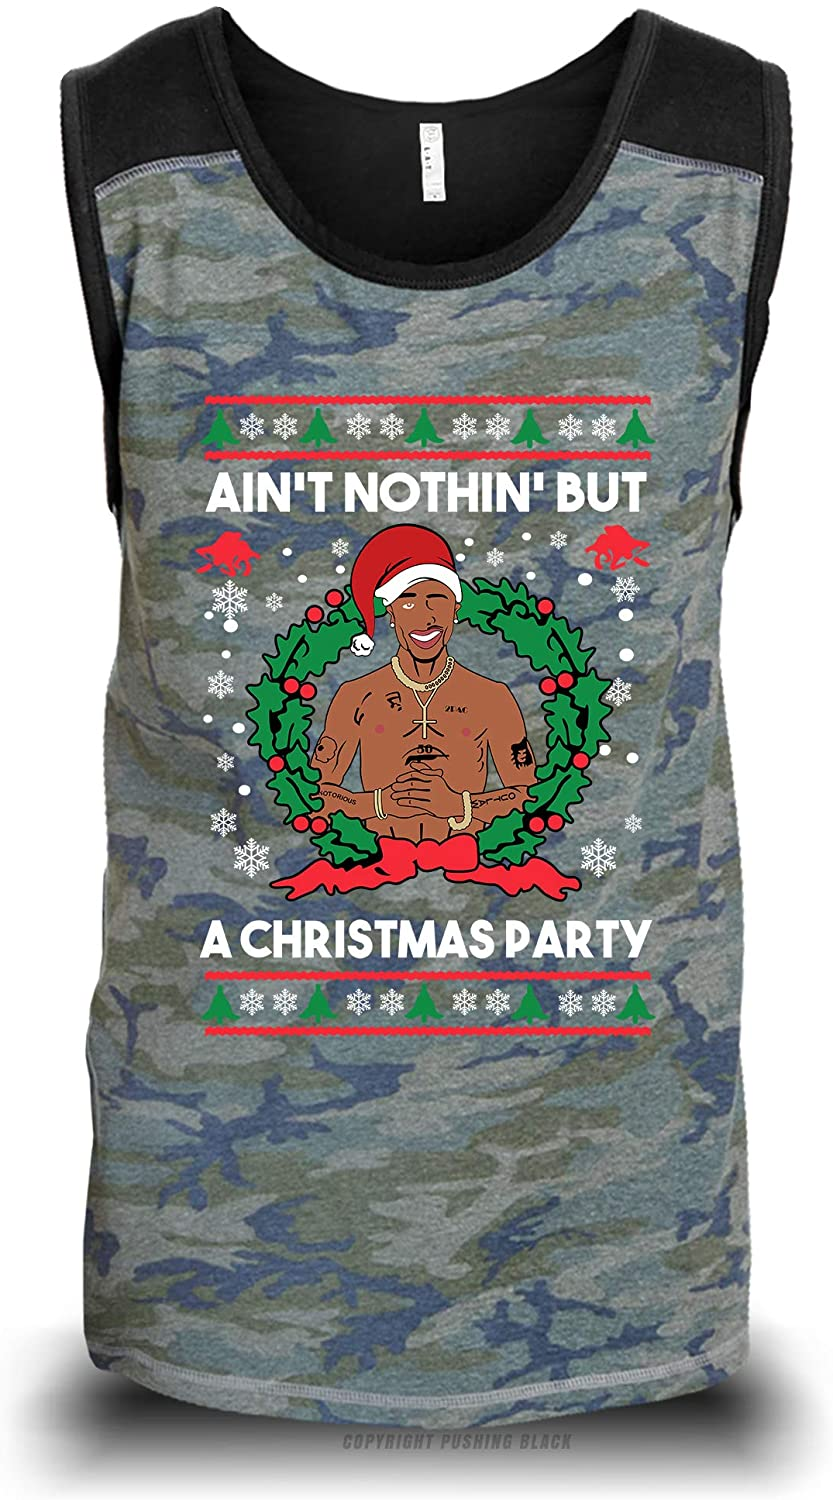 Aint Nothing But a Christmas Party Unisex Raglan Tank Top (Camouflage with Black Shoulders (LAT), X-Large)